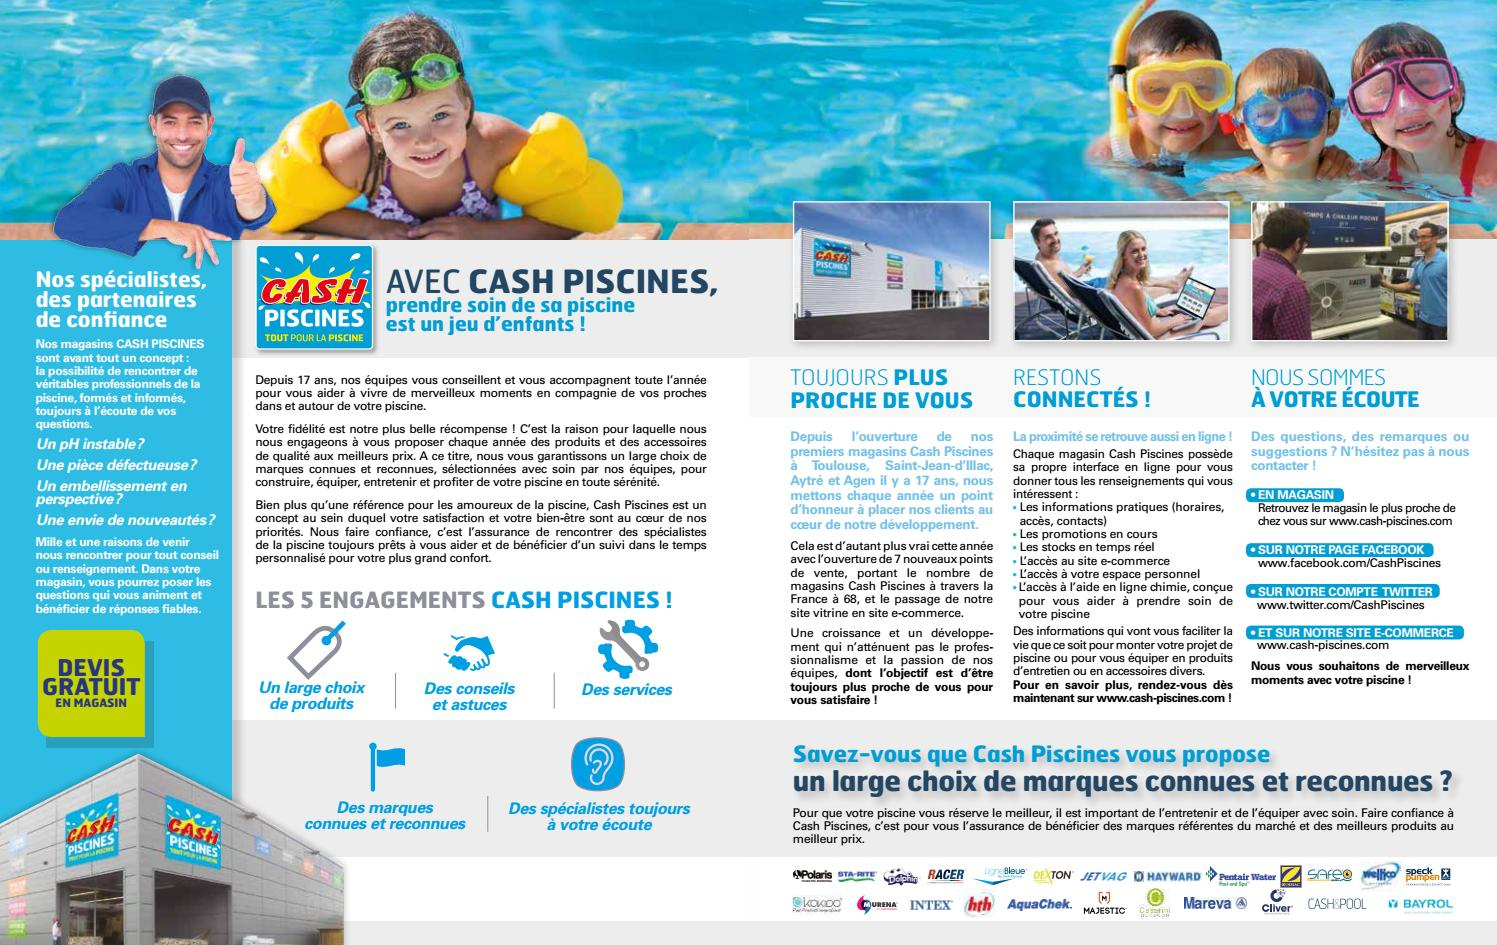 Catalogue Cash Piscine 2017 By Octave Octave - Issuu encequiconcerne Cash Piscine Agen